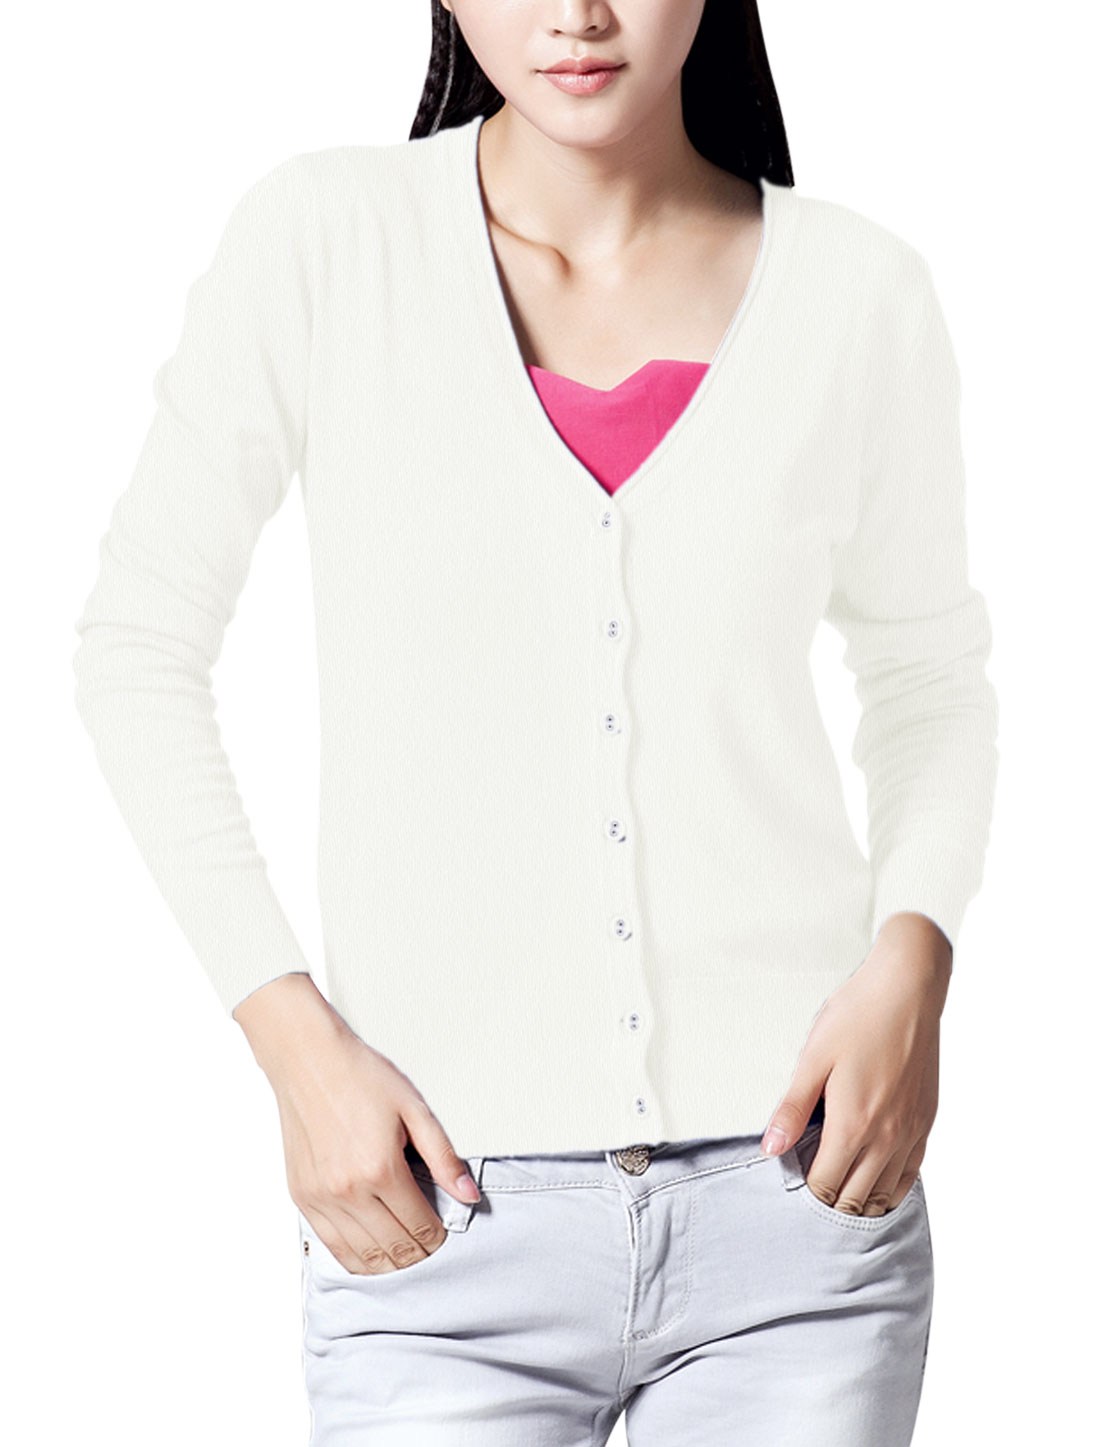 Lady V Neck Ribbed Cuff w Hem Design Casual Knit Cardigan White M